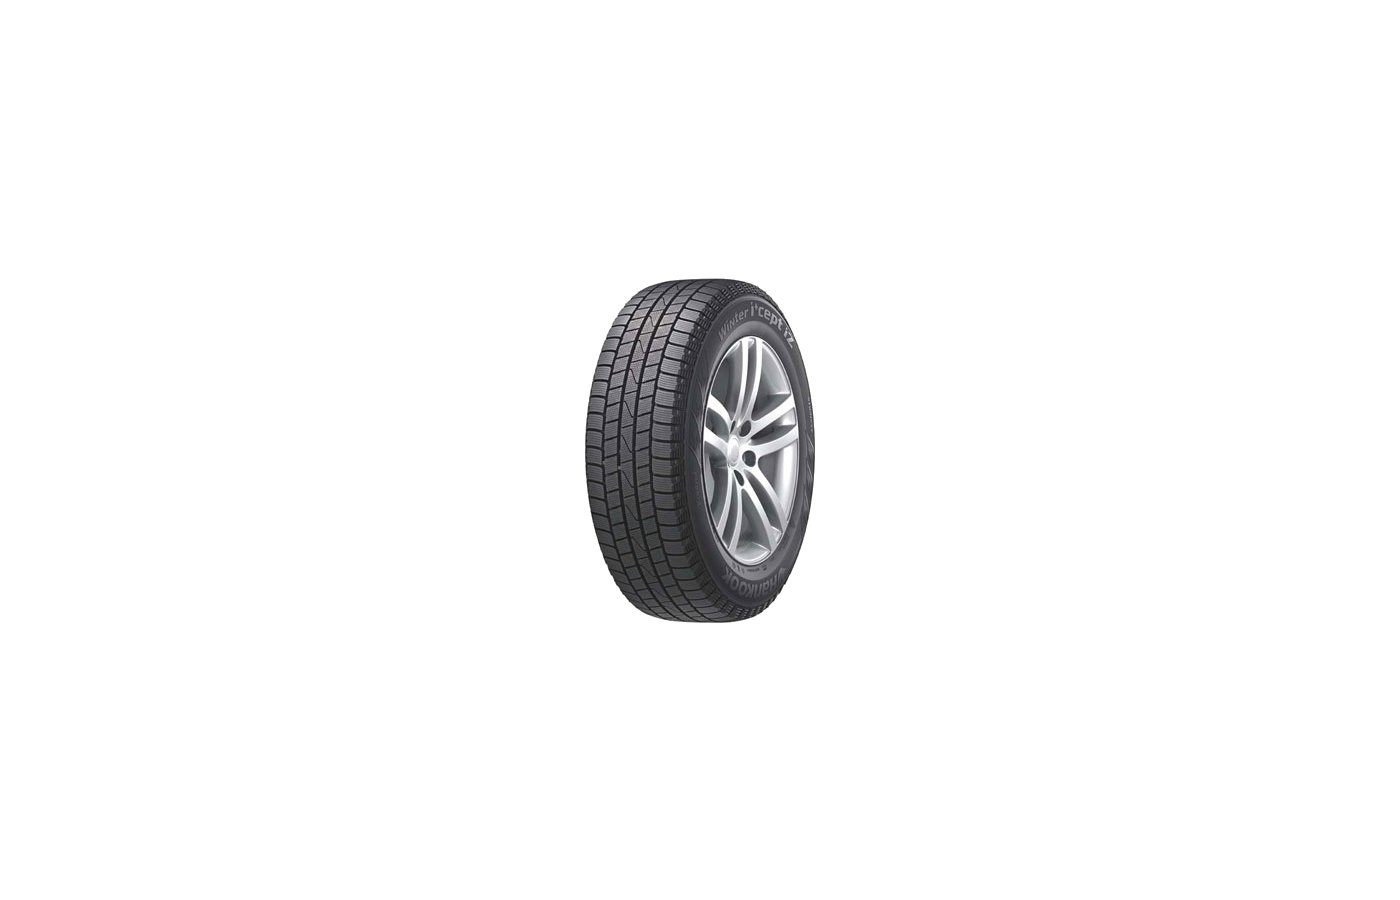 Шина Hankook Winter I*cept IZ W606 215/55 R16 TL 93T